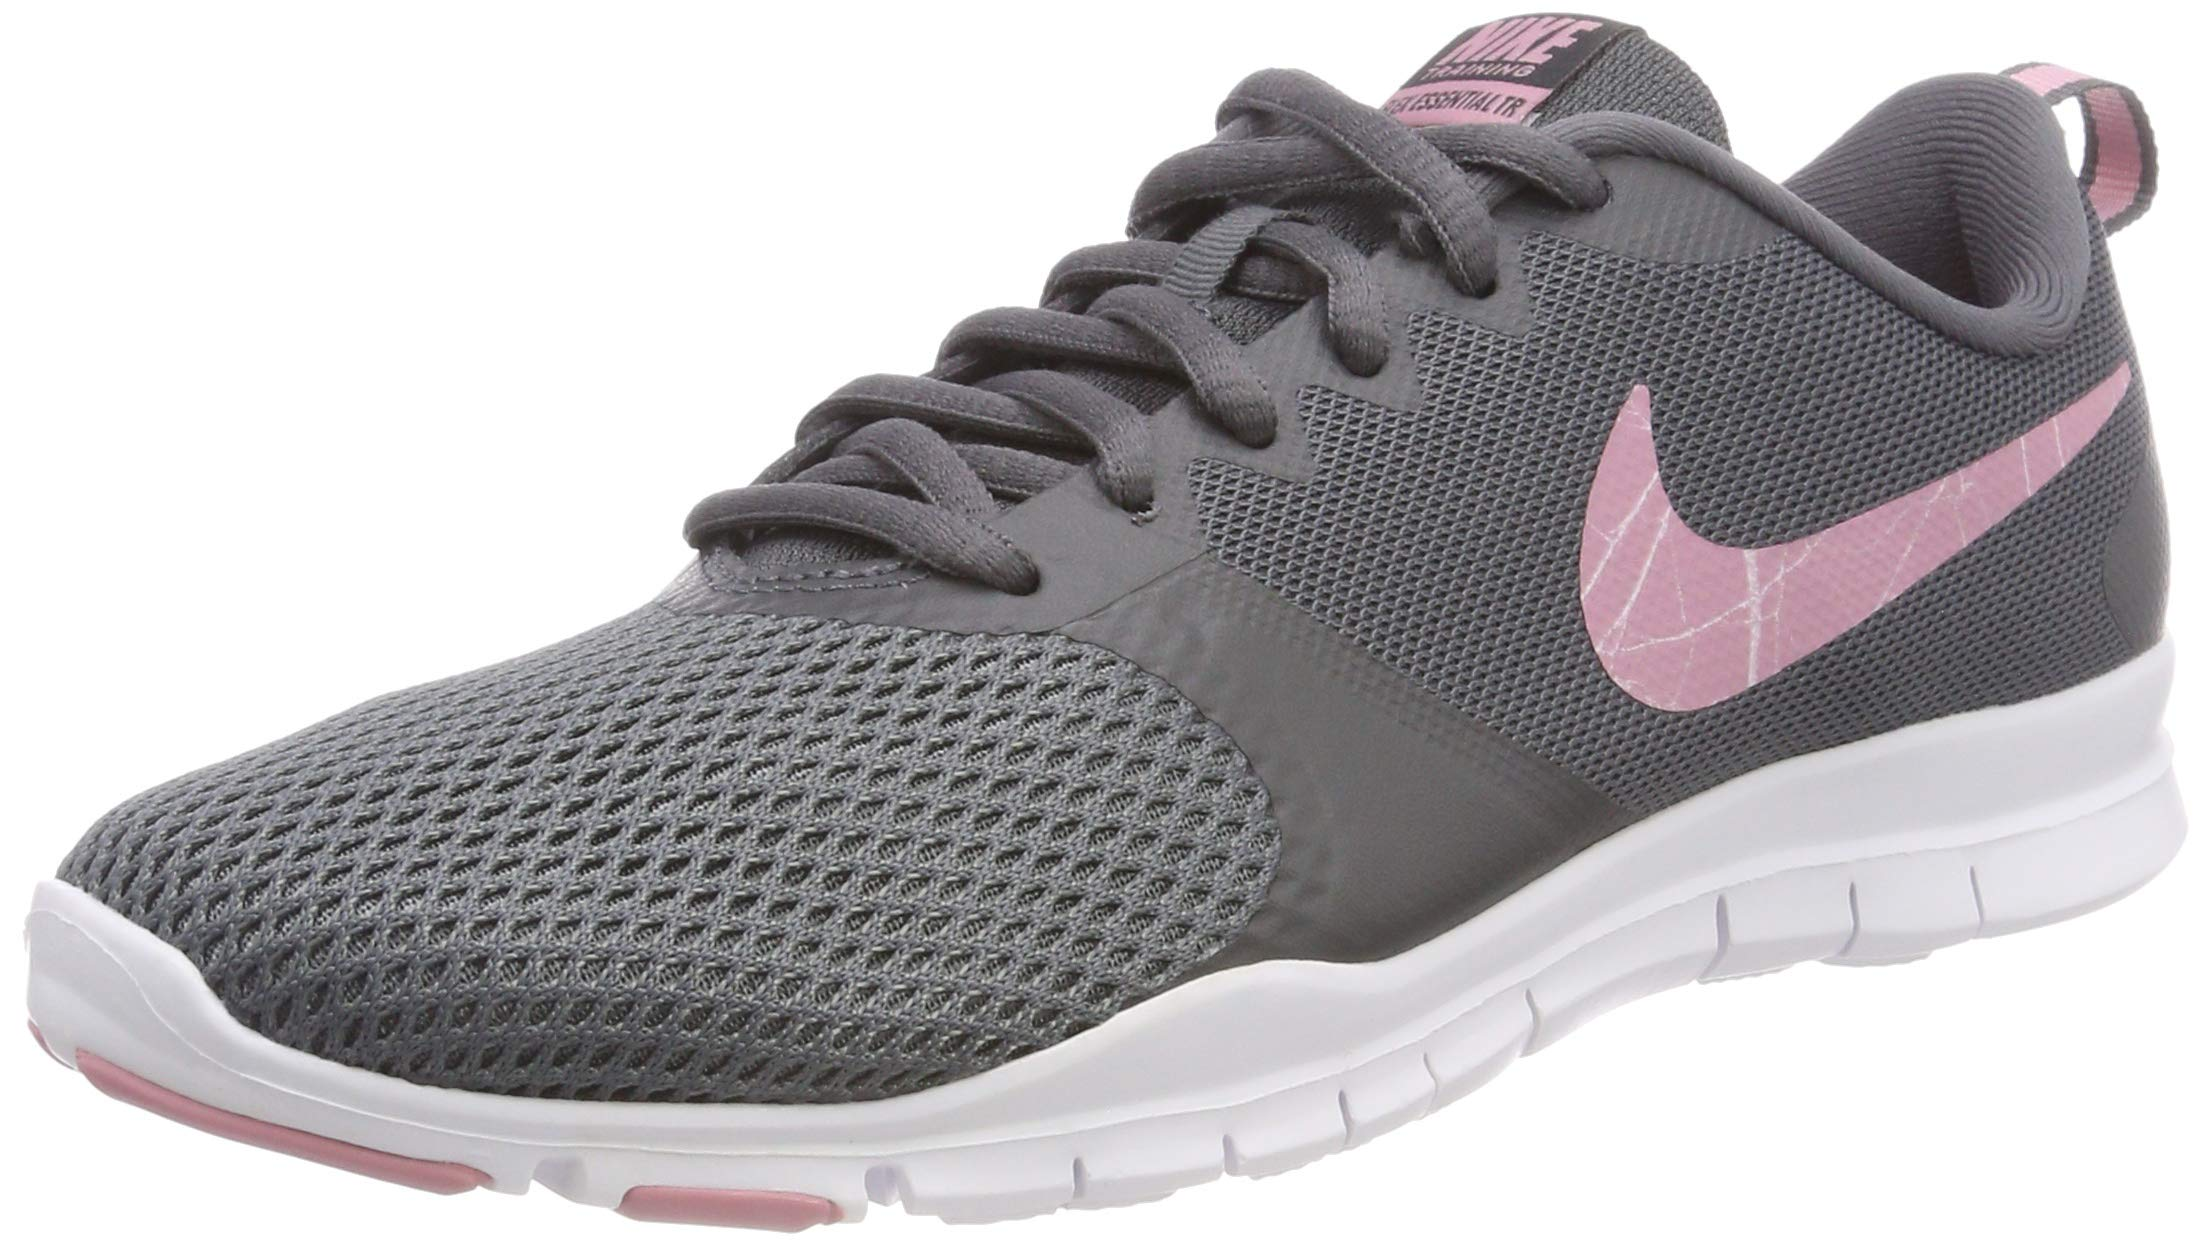 Nike Womens Flex Essential Tr Training Shoes (7 B(M) US, Dark Grey/Elemental Pink)